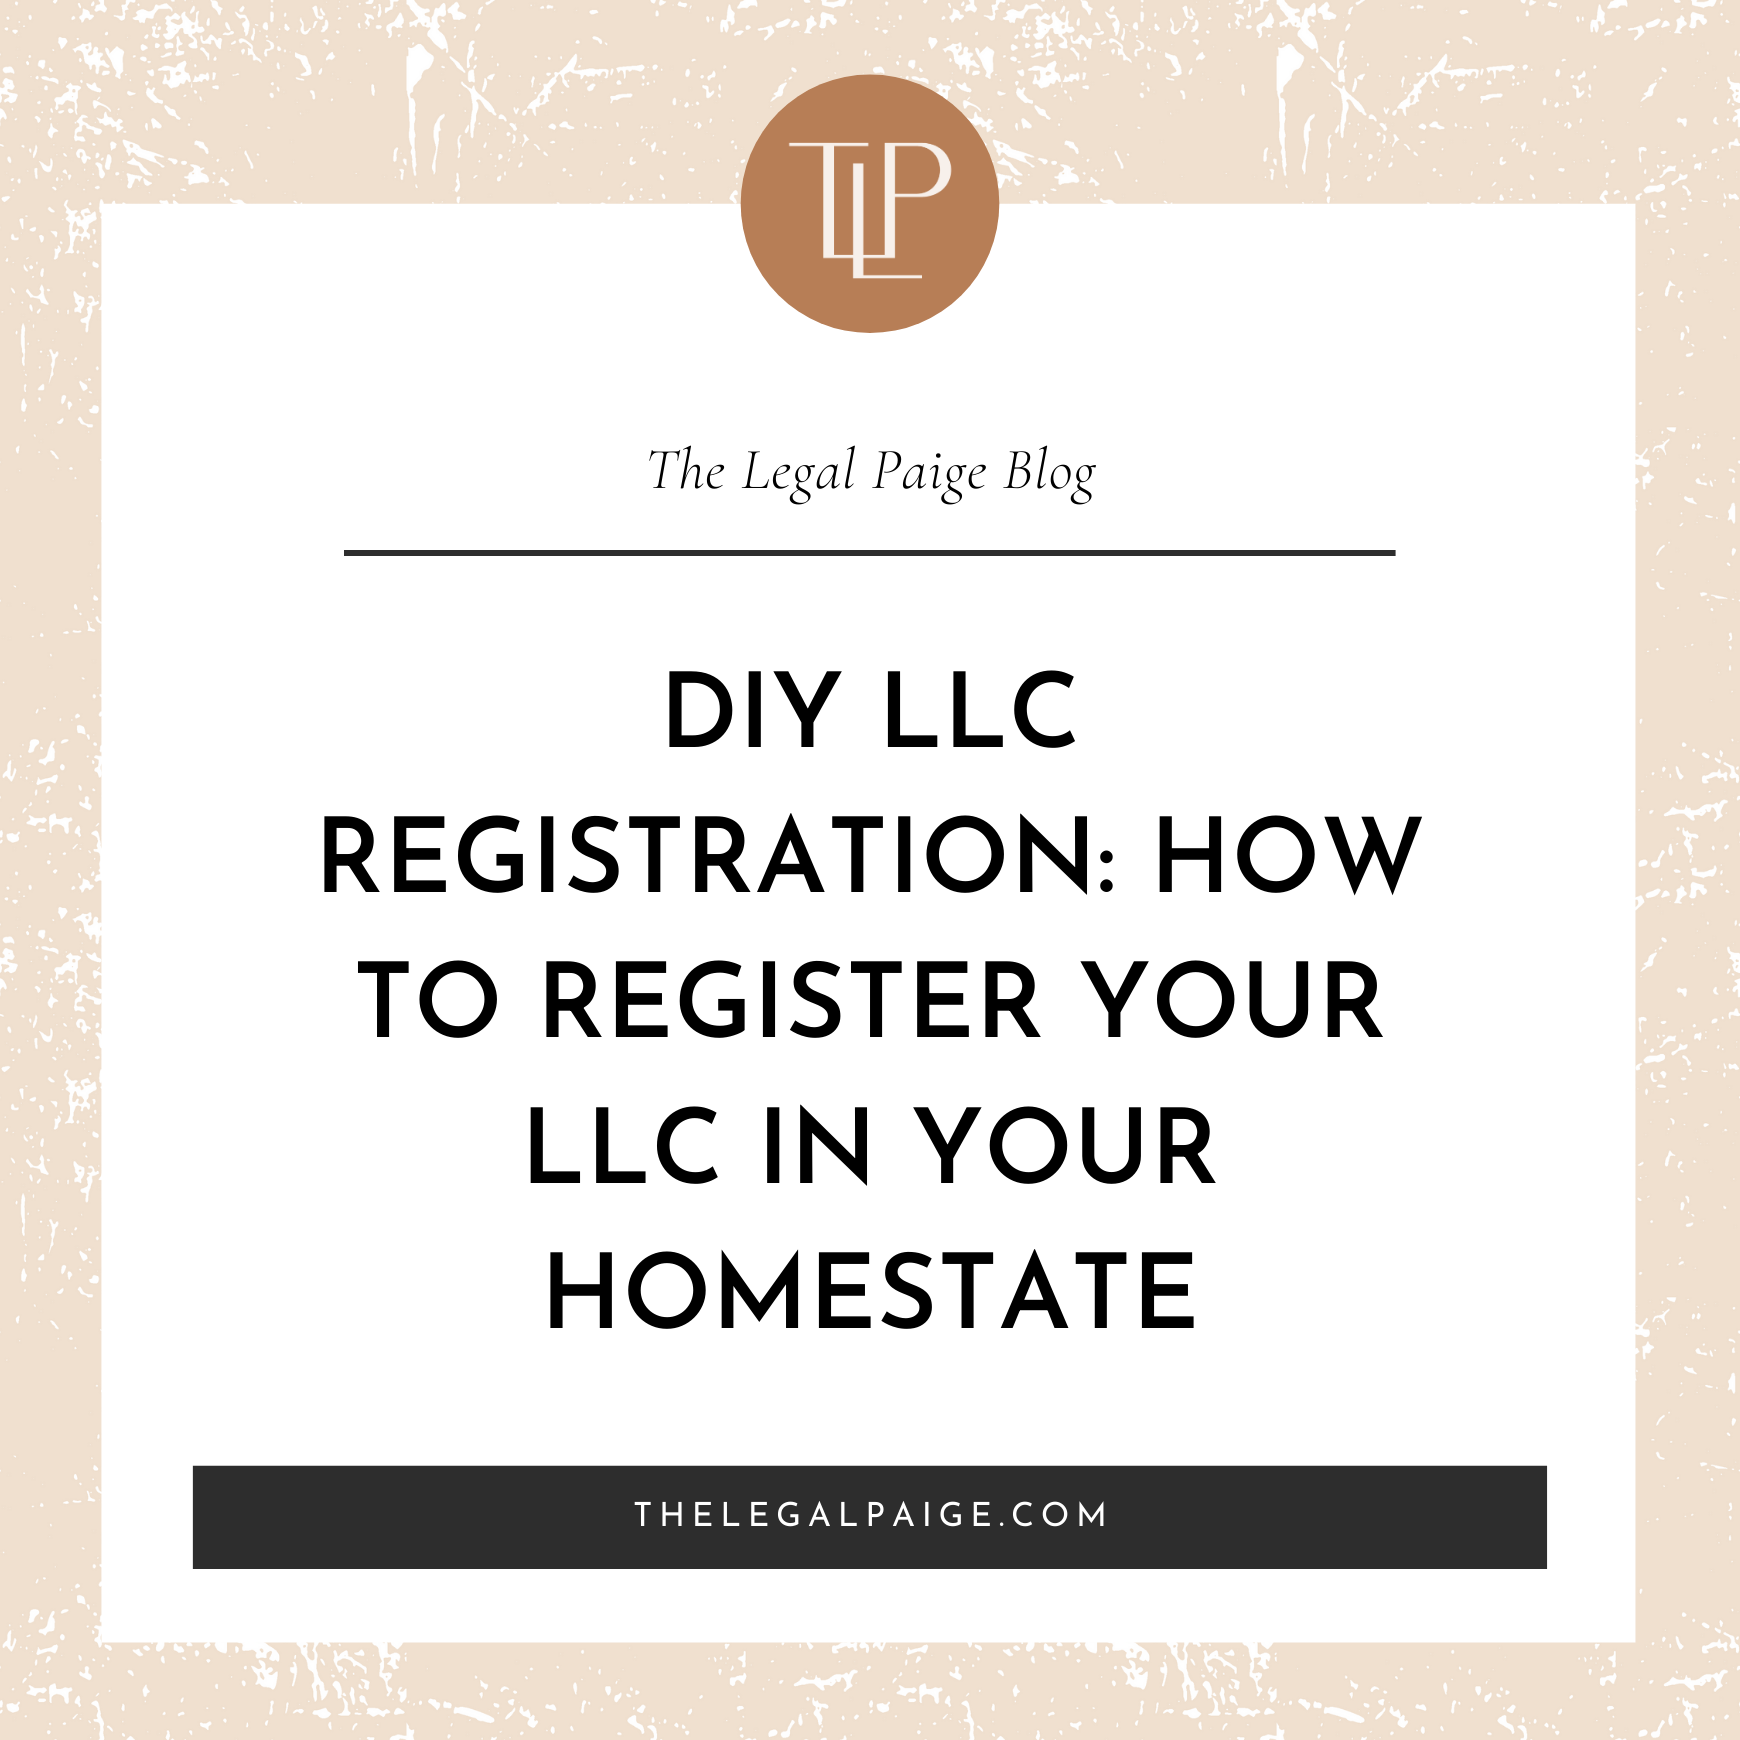 DIY LLC Registration: How to Register your LLC In Your Homestate